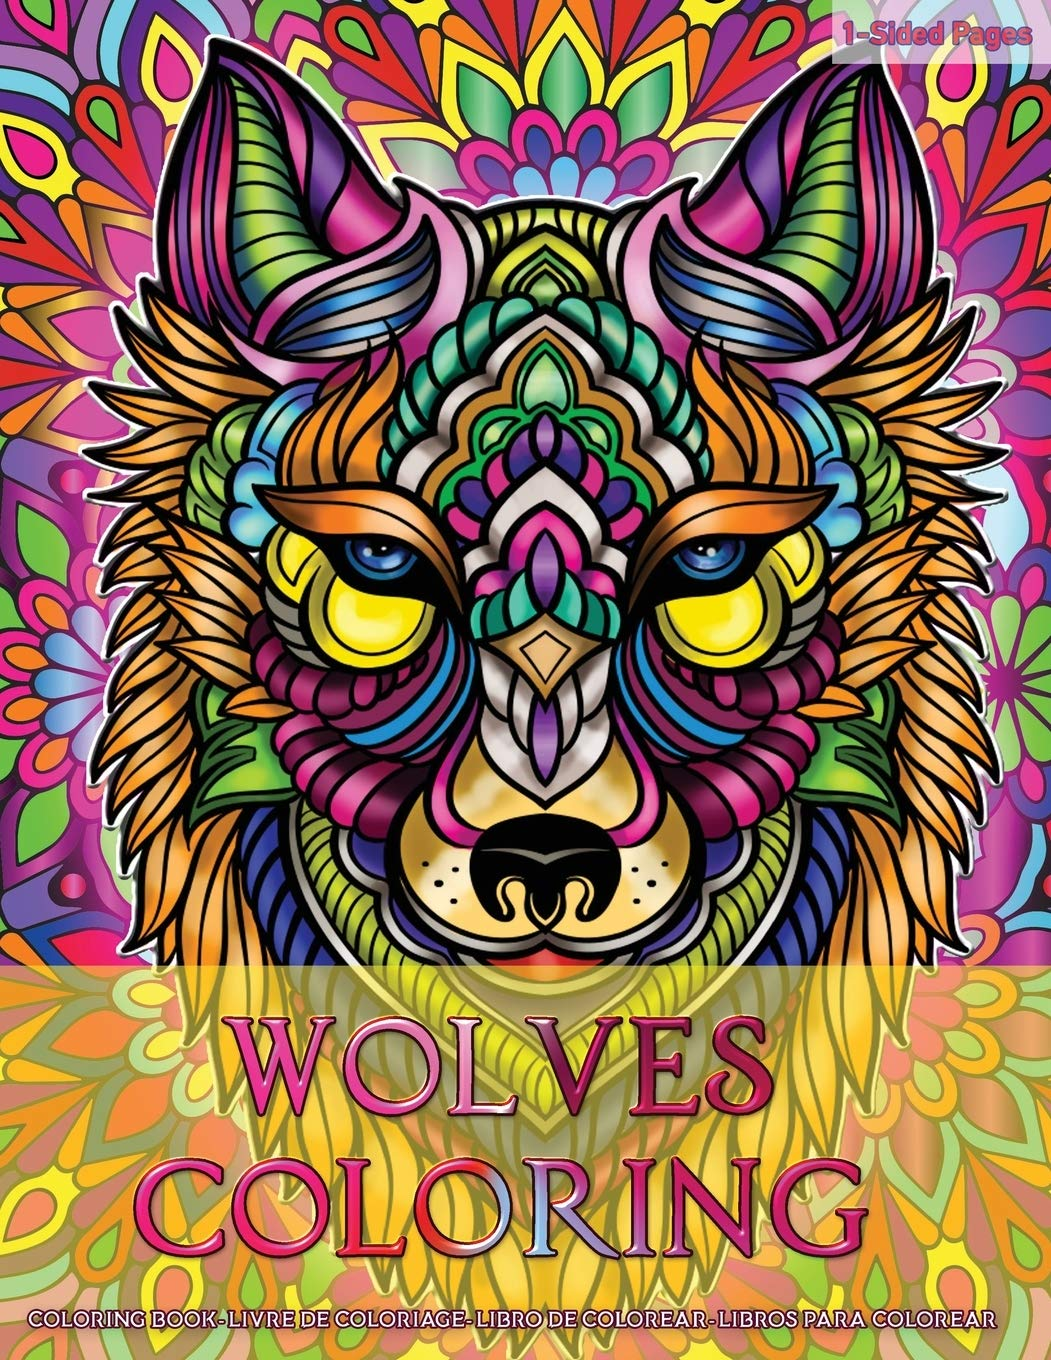 Amazon Com Wolves Coloring Coloring Book For Adults Wolves Design In Mandala Coloring Book Style Designs For Stress Relief Relaxation And Boost Creativity 9781082180224 Coloring Kreatifo Books